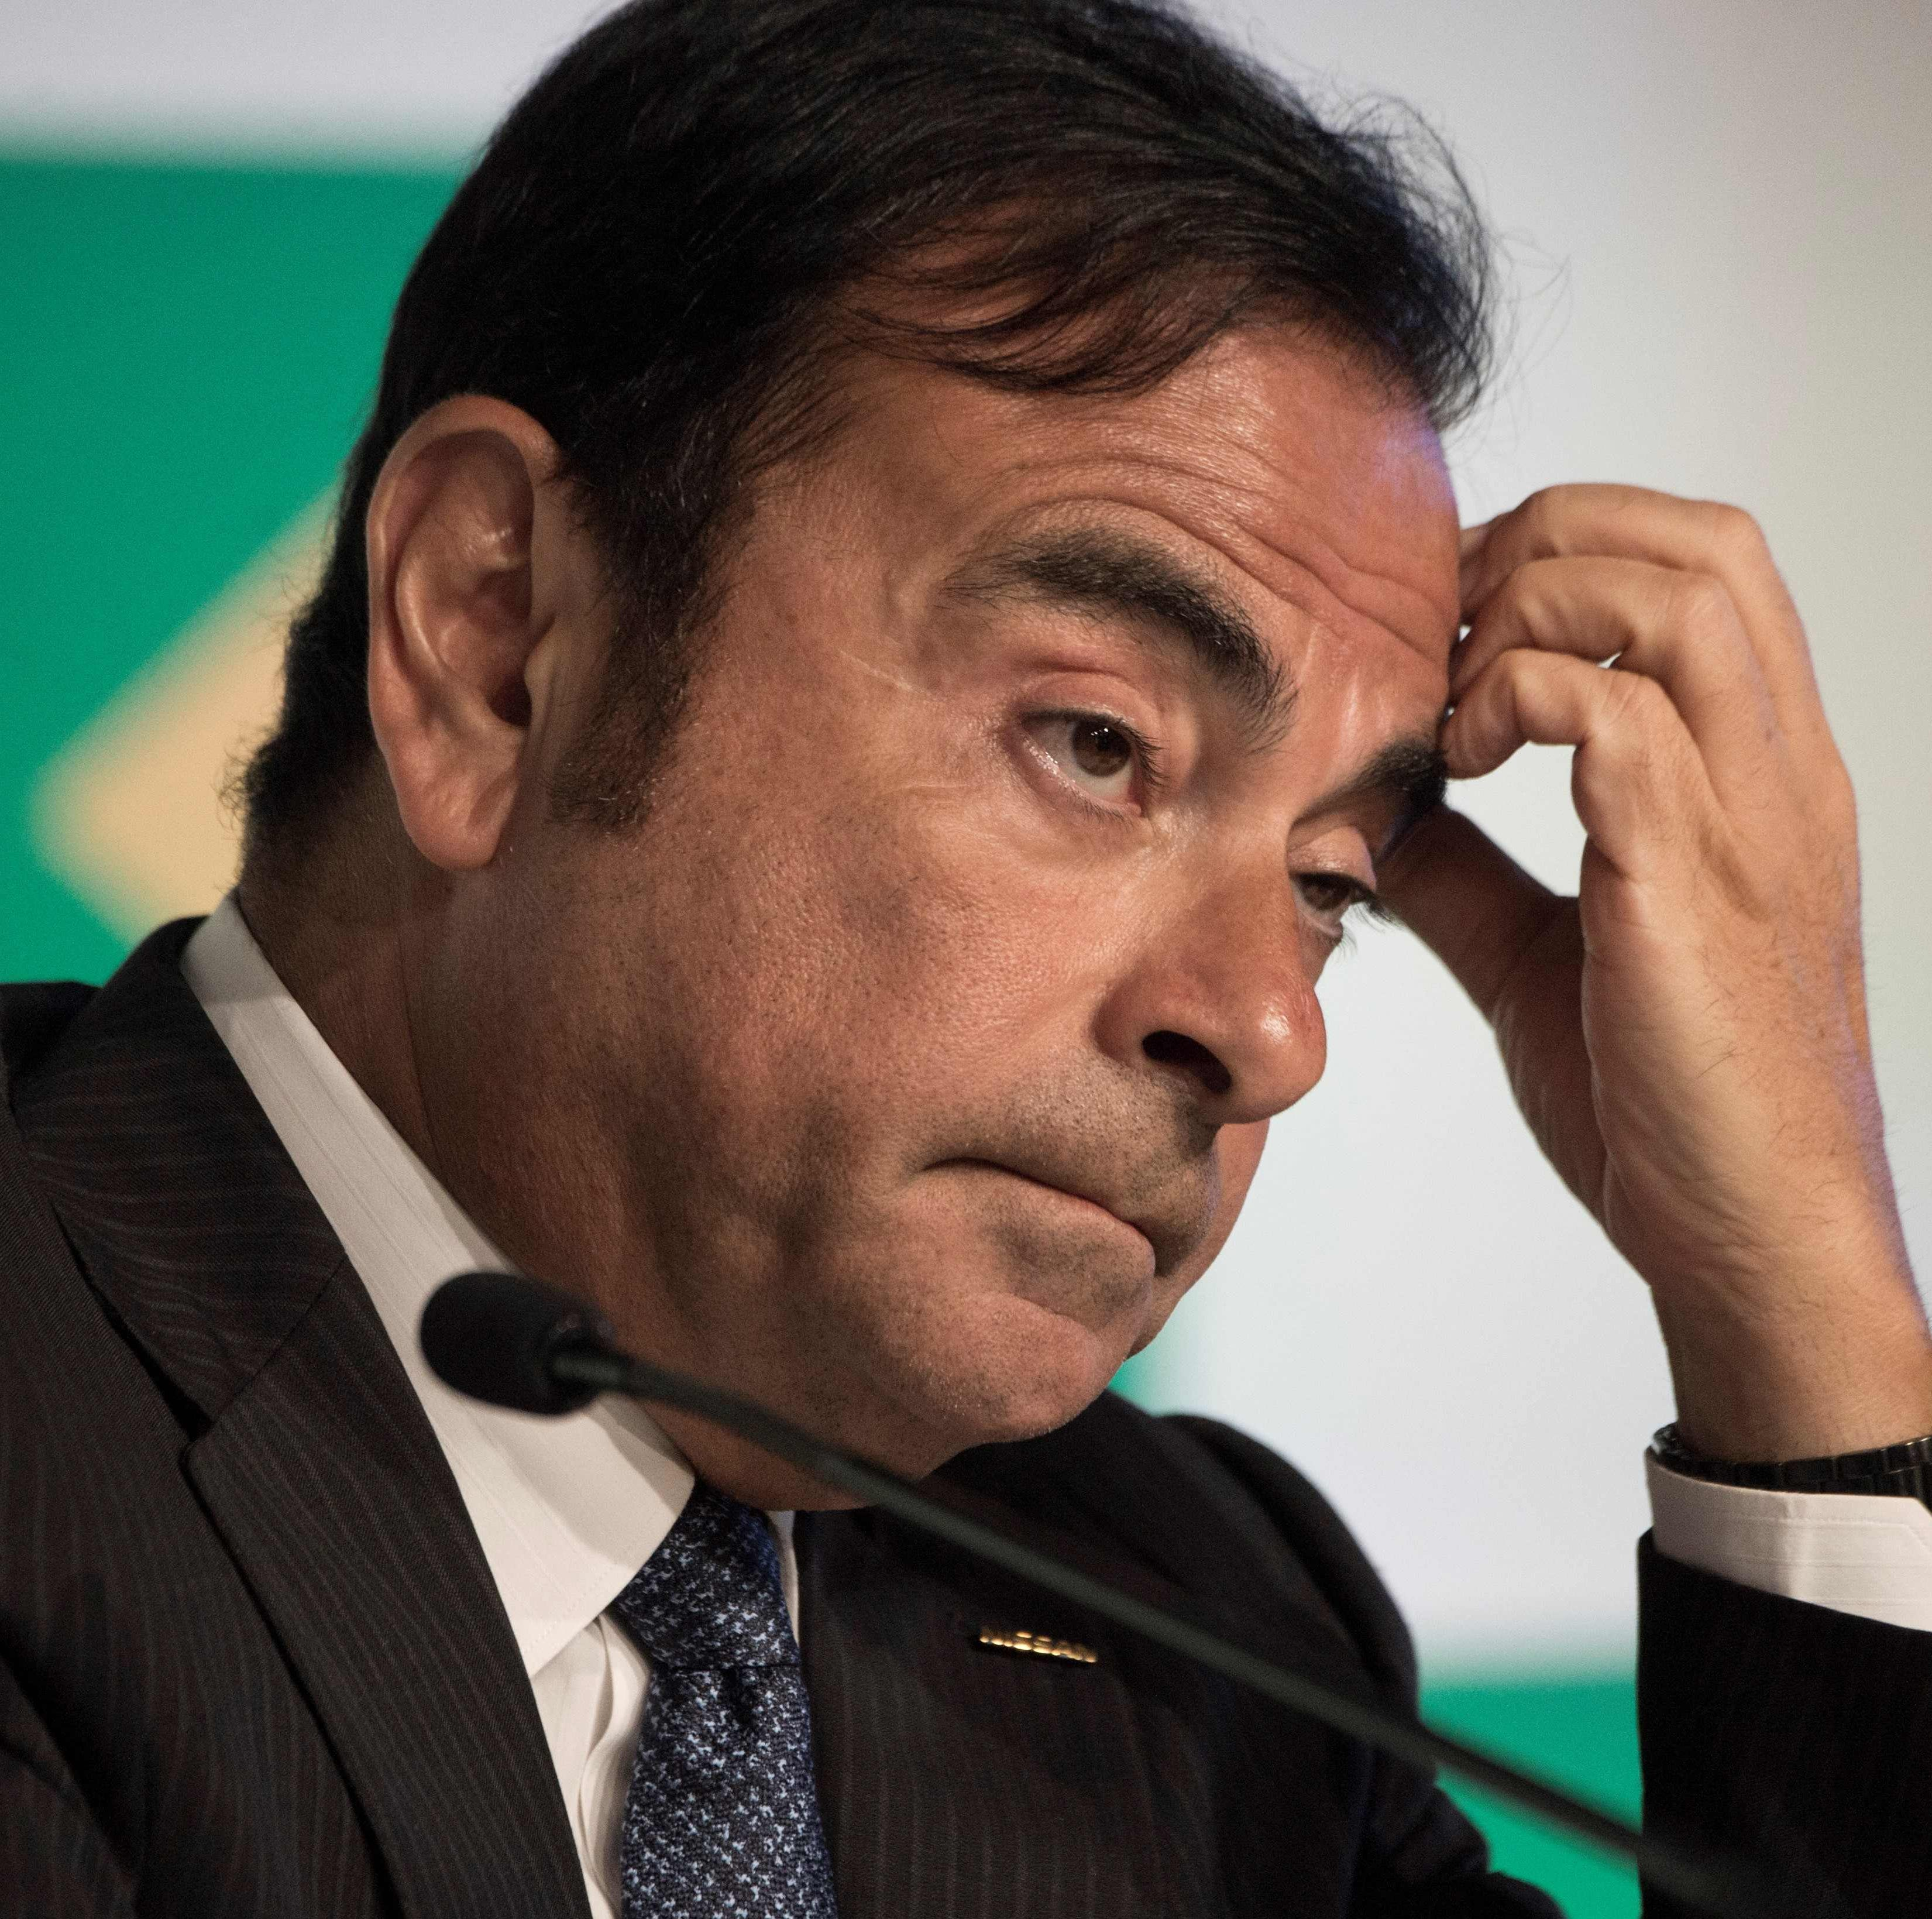 Former Michelin exec Carlos Ghosn, superstar of the auto industry, arrested over alleged financial misconduct